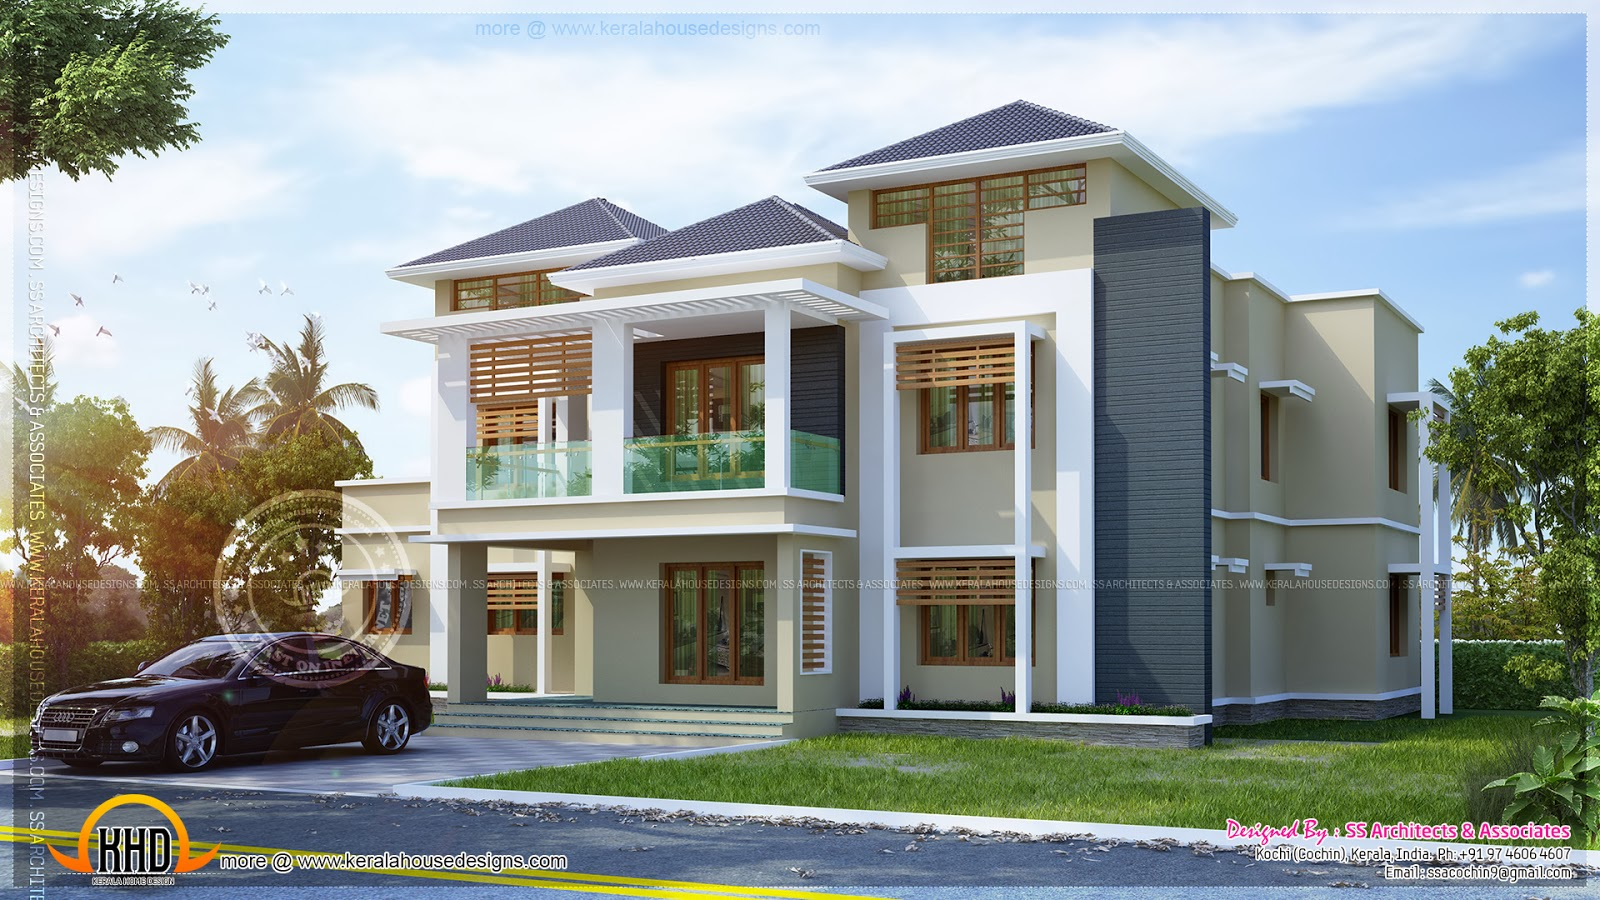 Awesome house plan kerala home design and floor plans Awesome small house plans